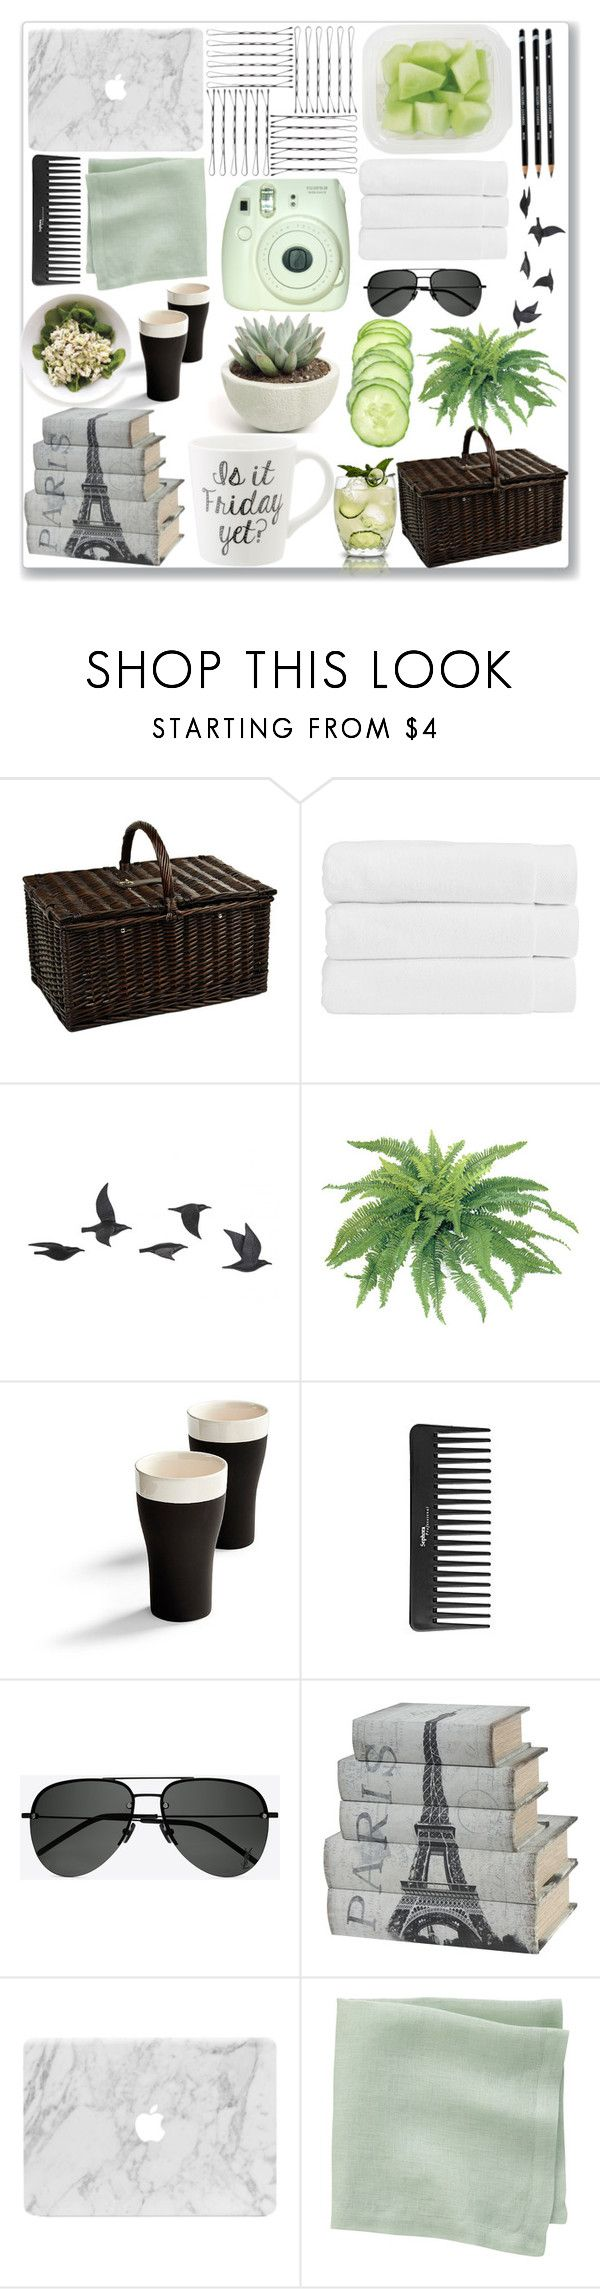 """Picnic"" by amber-mistry ❤ liked on Polyvore featuring Picnic at Ascot, Christy, Jayson Home, Frontgate, Sephora Collection, Yves Saint Laurent, CB2 and picnic"